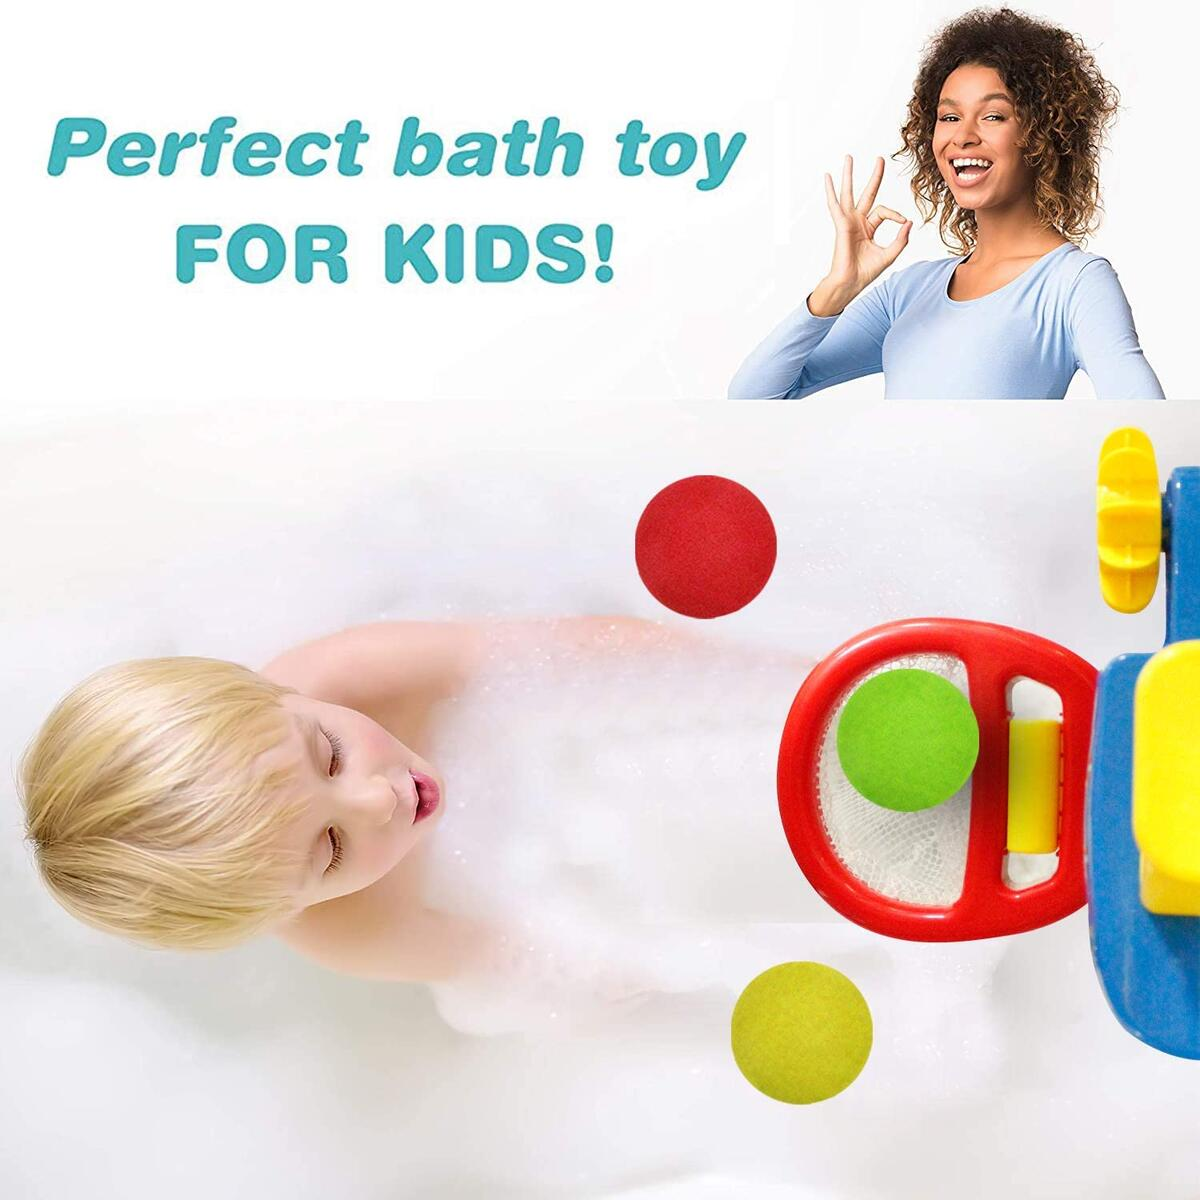 HANMUN Shoot and Splash Basketball Hoop Bathtub Shooting Game - Bath Toy Playset for Kids and Toddlers - 3 Balls Included